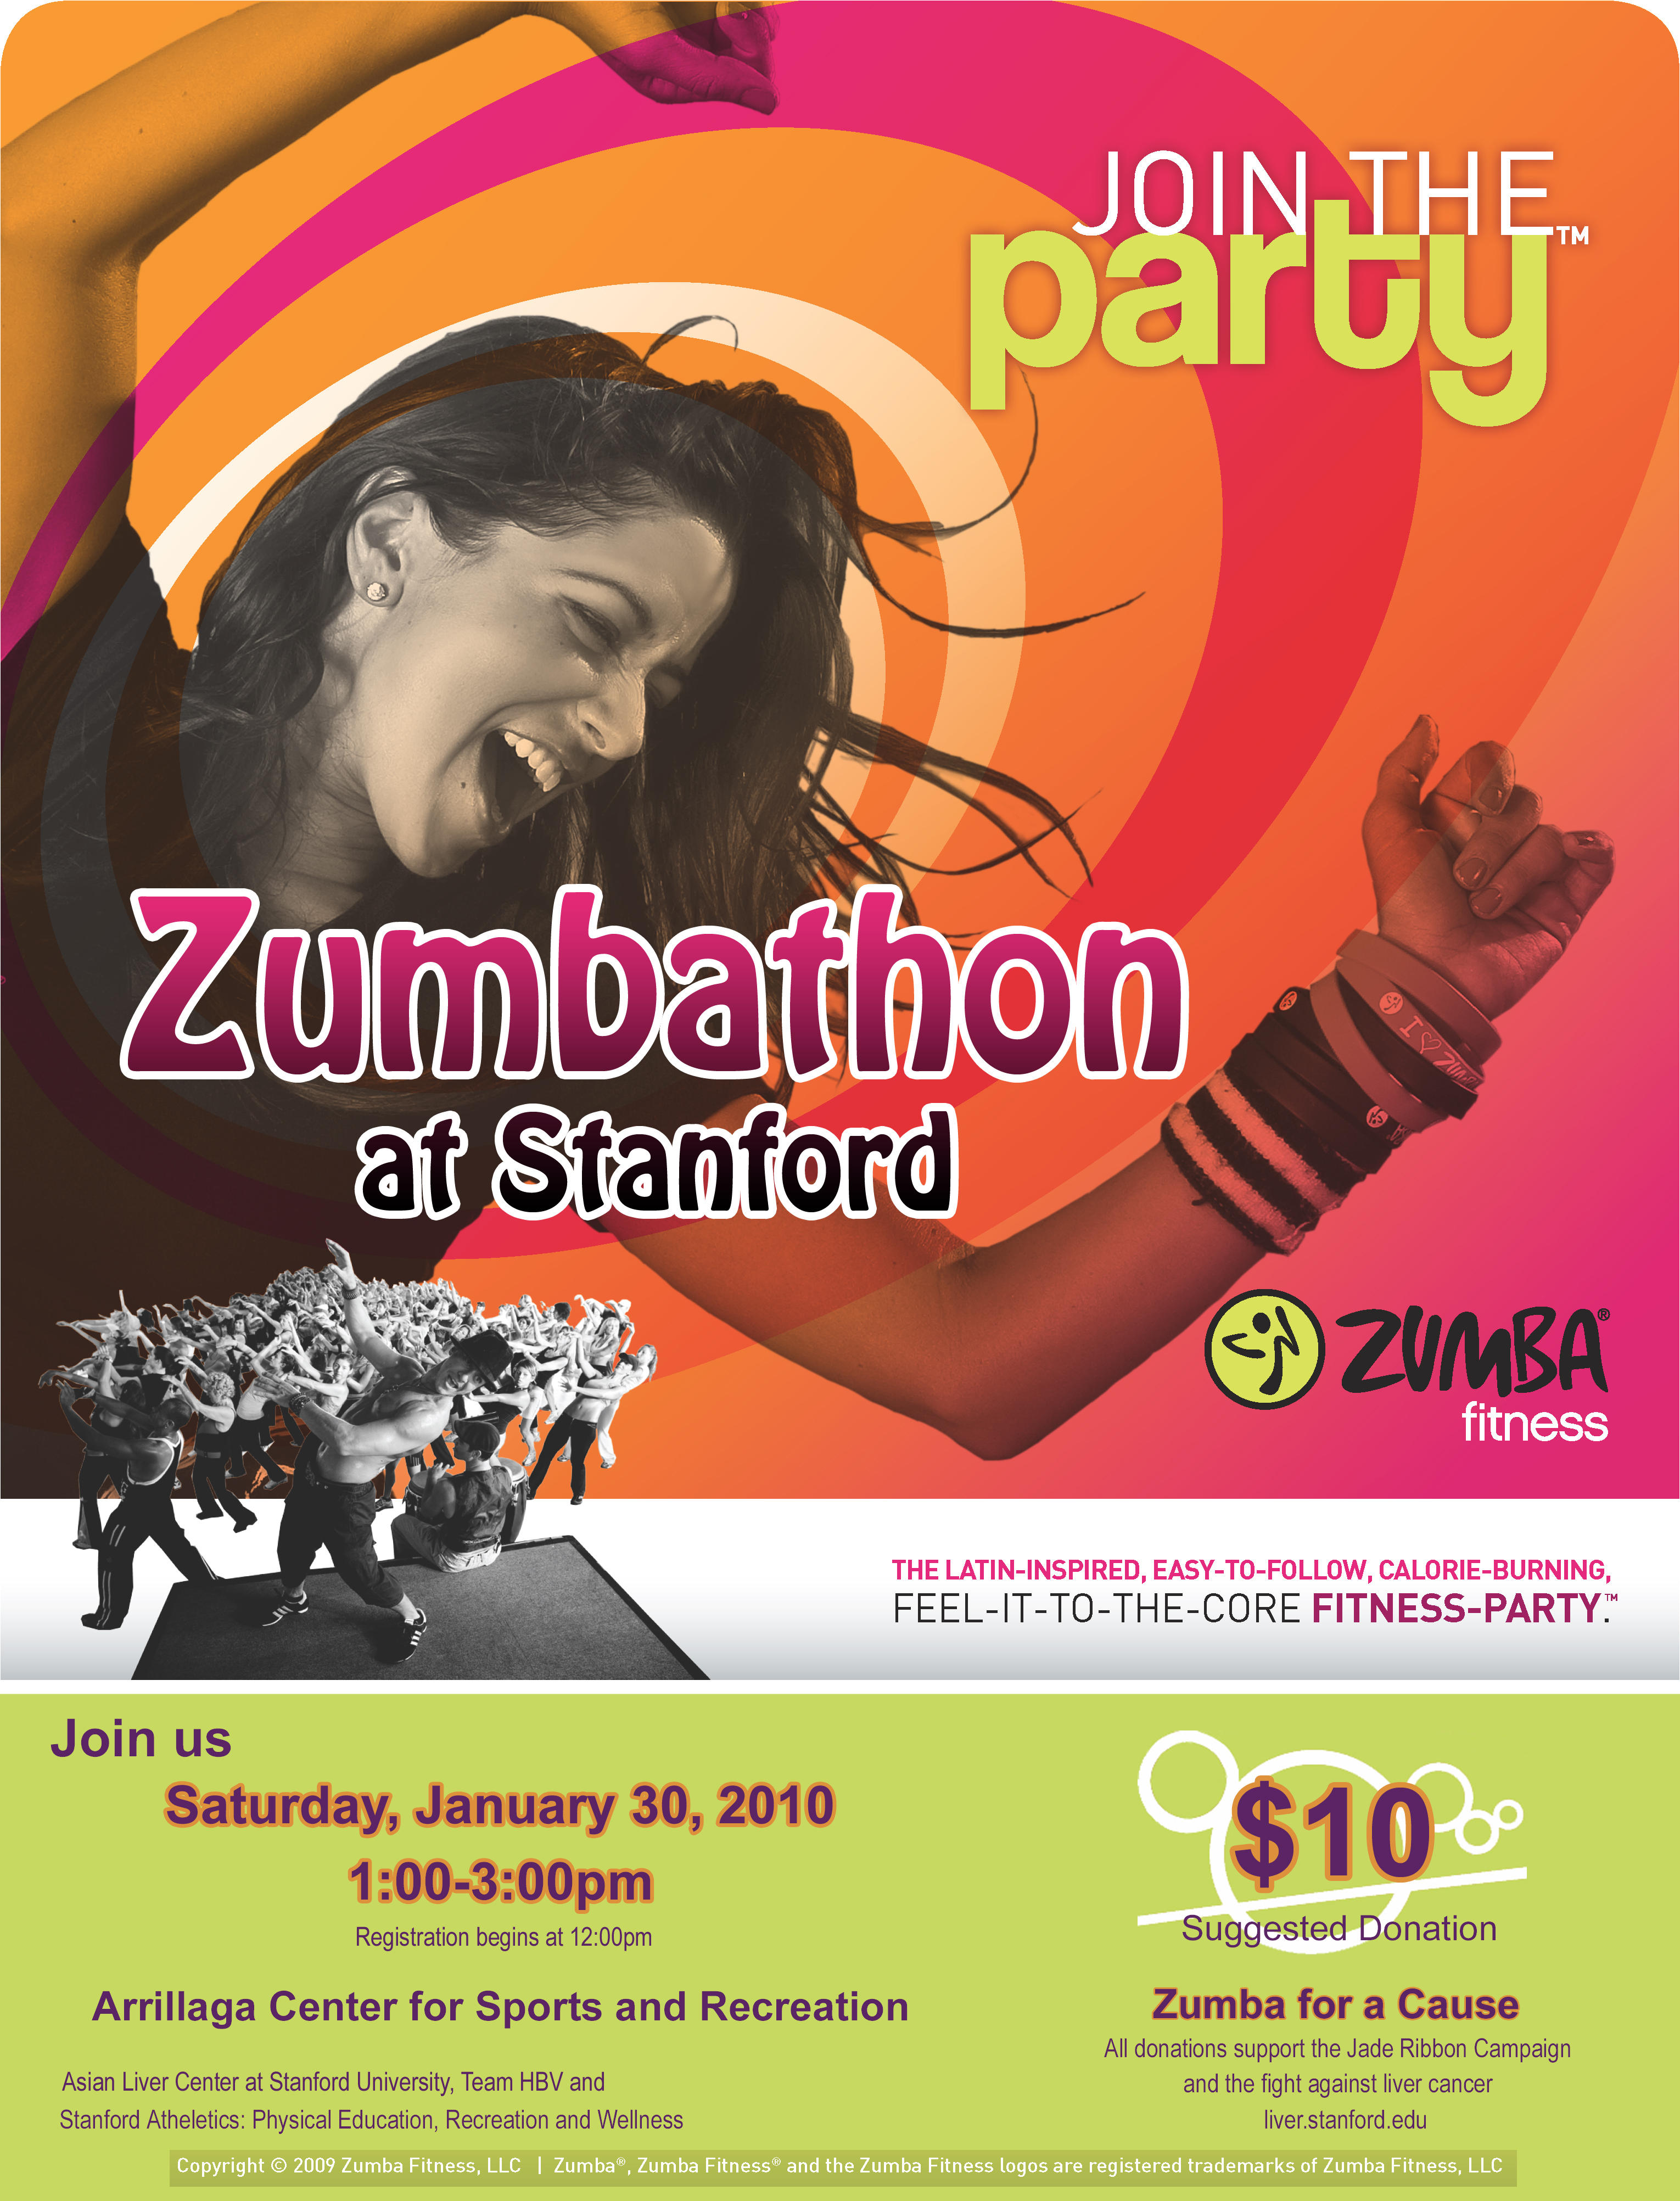 So mark your calendars and save the dates Zumba Flyers